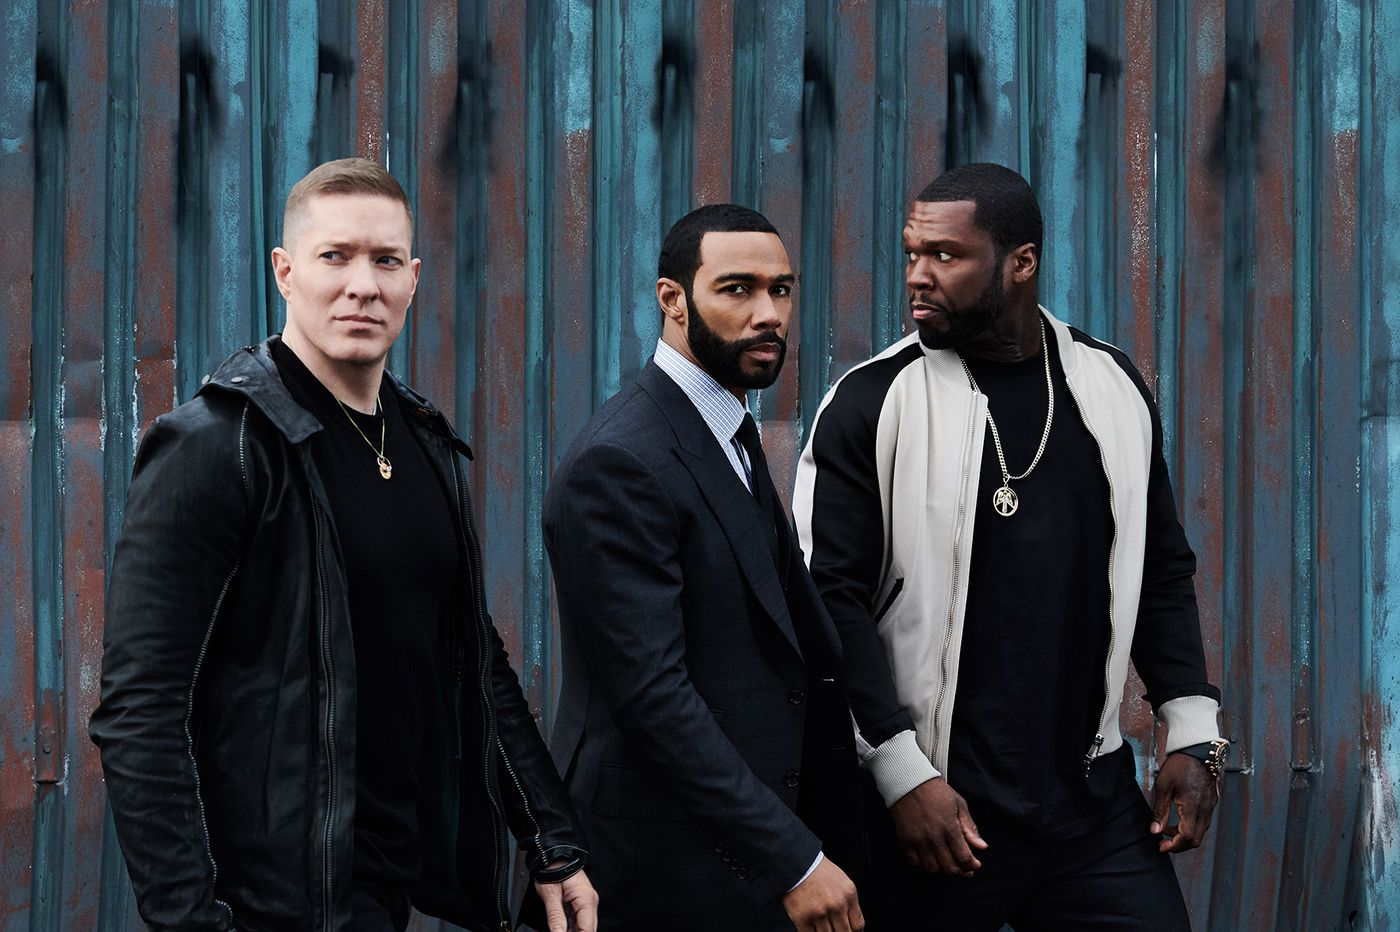 TV picks: 'Power,' 'Welcome America,' 'Succession' and more